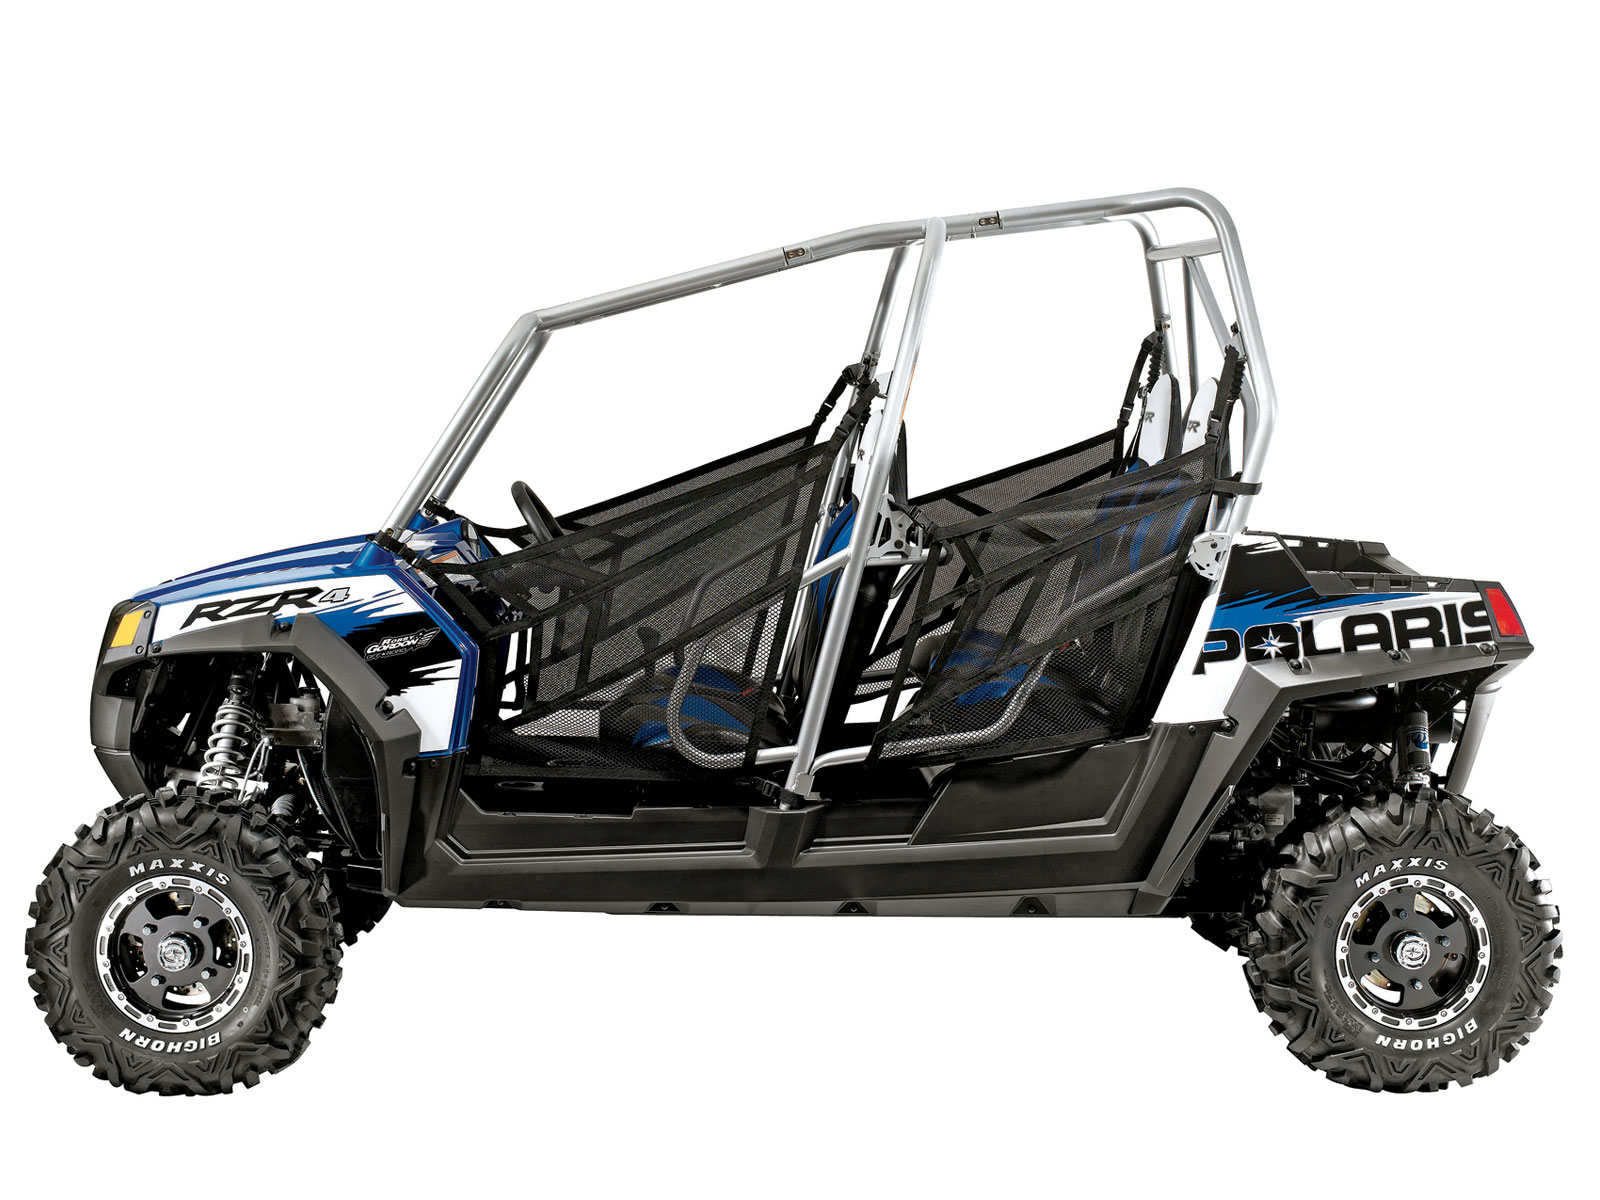 2015 Polaris Rzr 900 Xp For Sale In Ky Upcomingcarshq Com